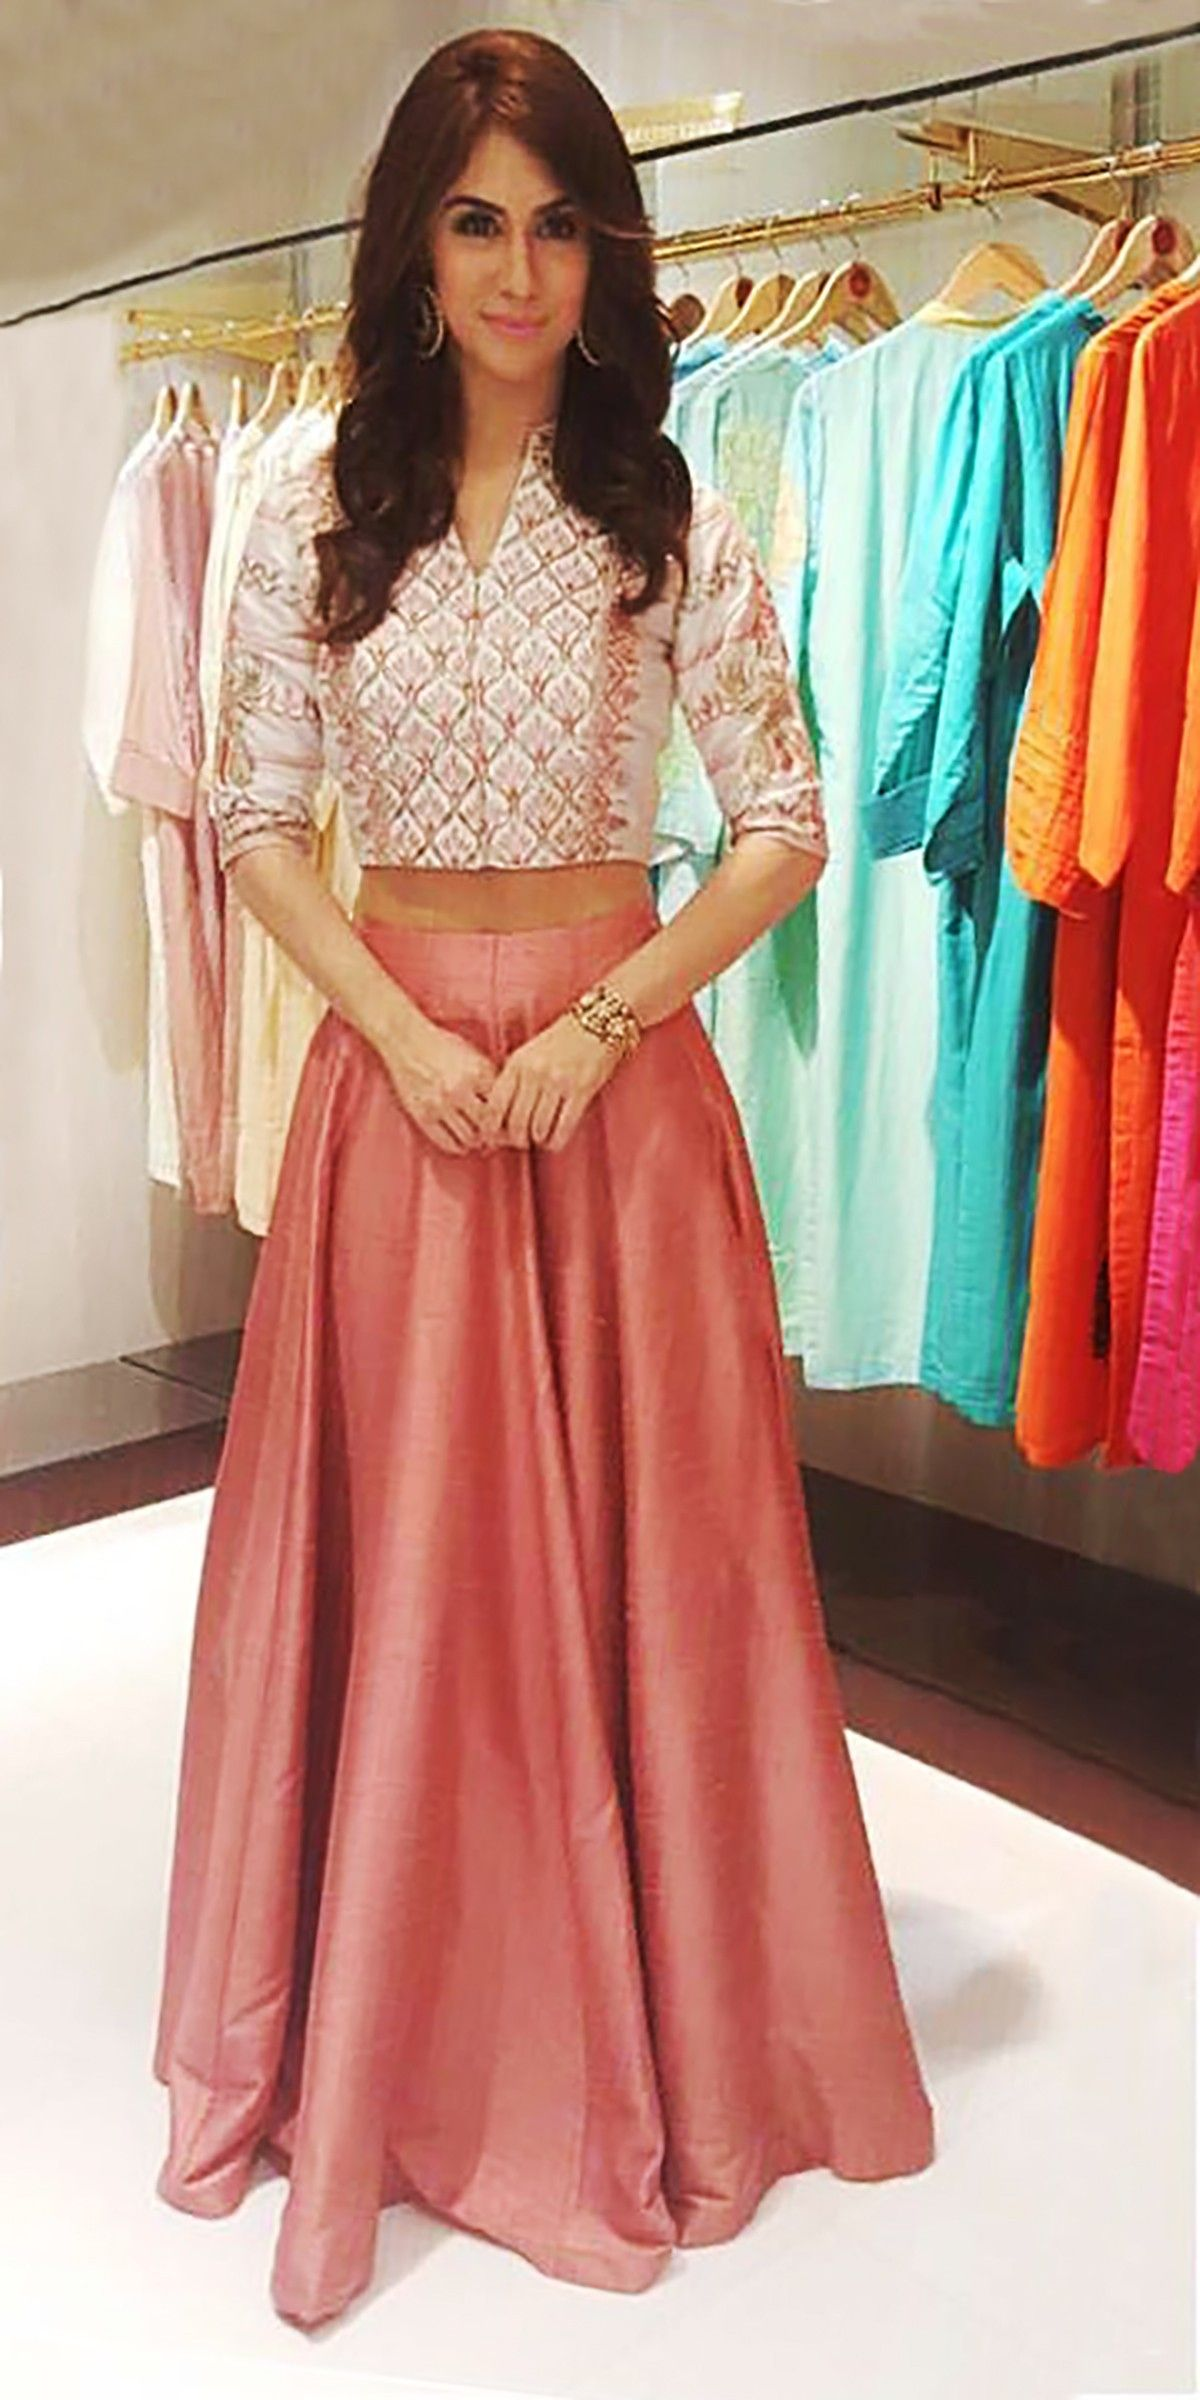 Featuring a crop top and skirt in shades of blush to wear for Wedding dress skirt and top